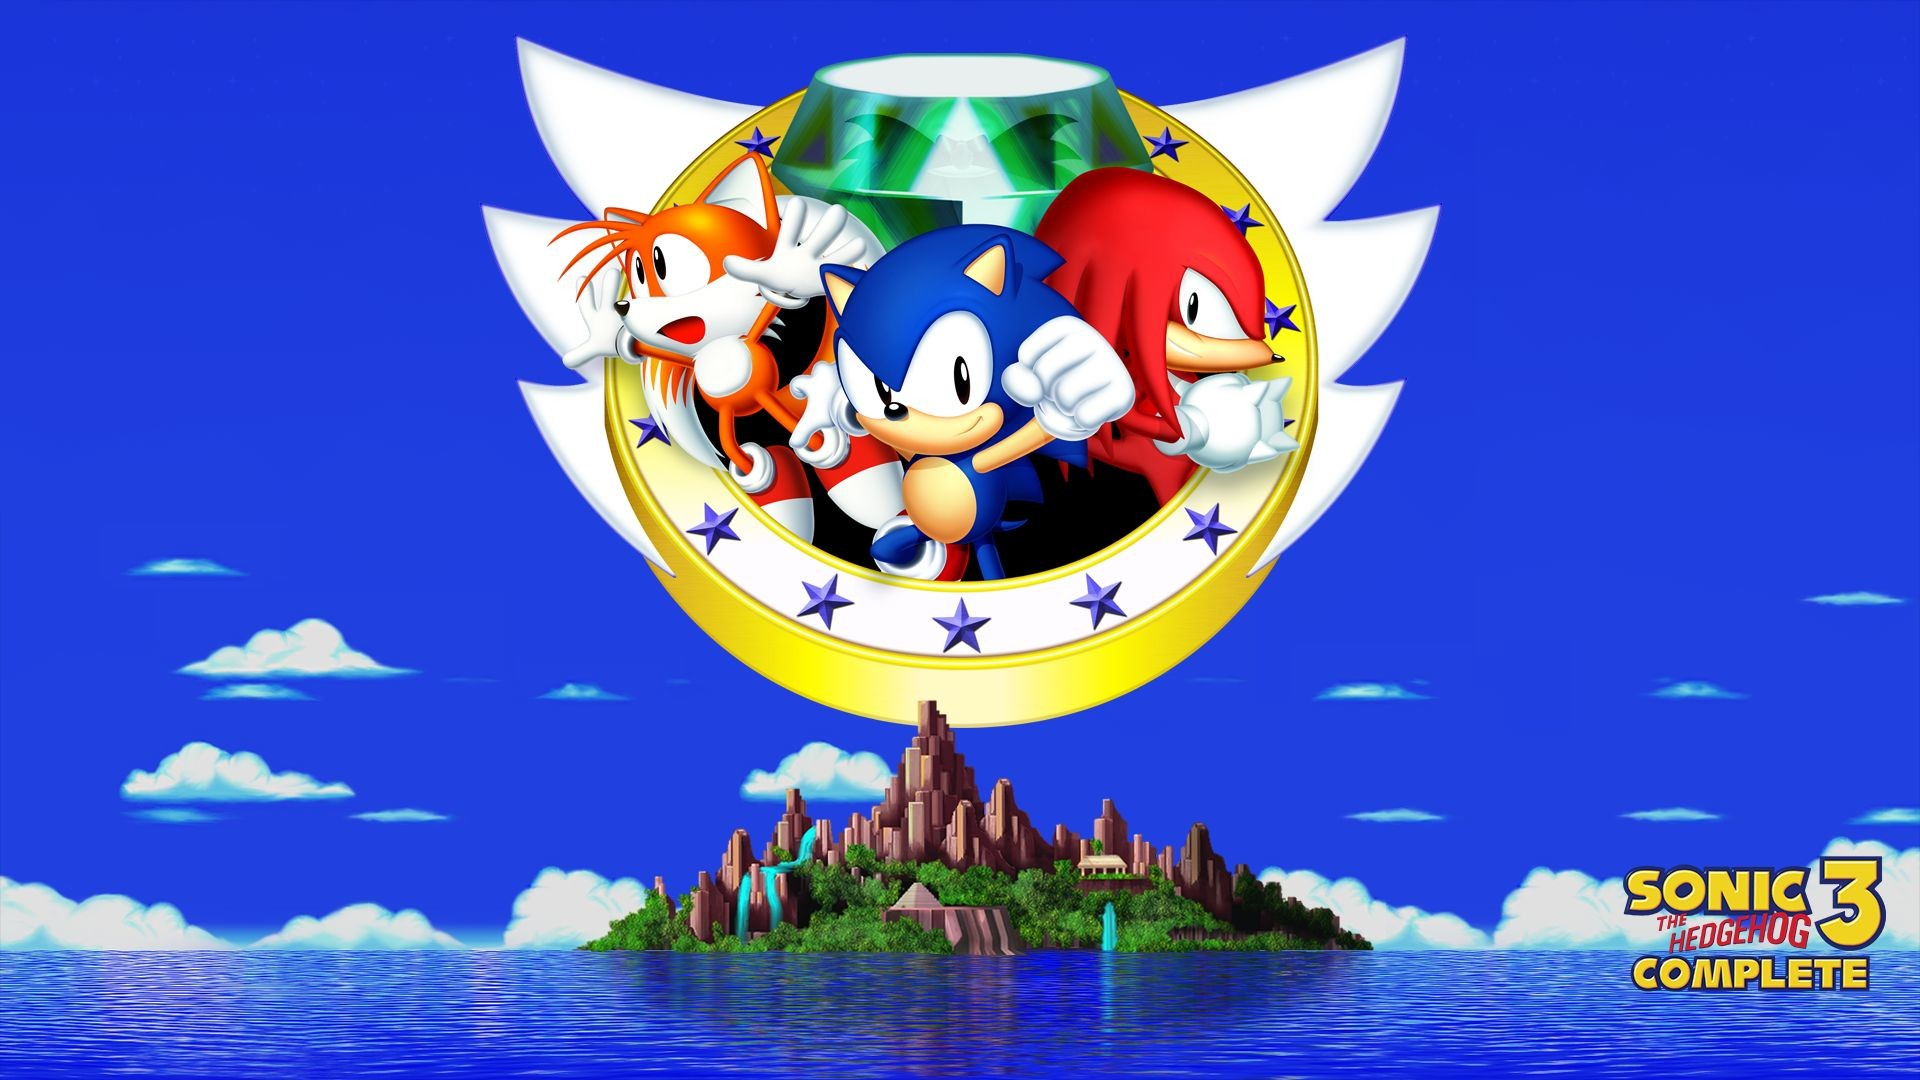 1920x1080 ... 3 Sonic the Hedgehog 3 HD Wallpapers | Backgrounds - Wallpaper Abyss ...